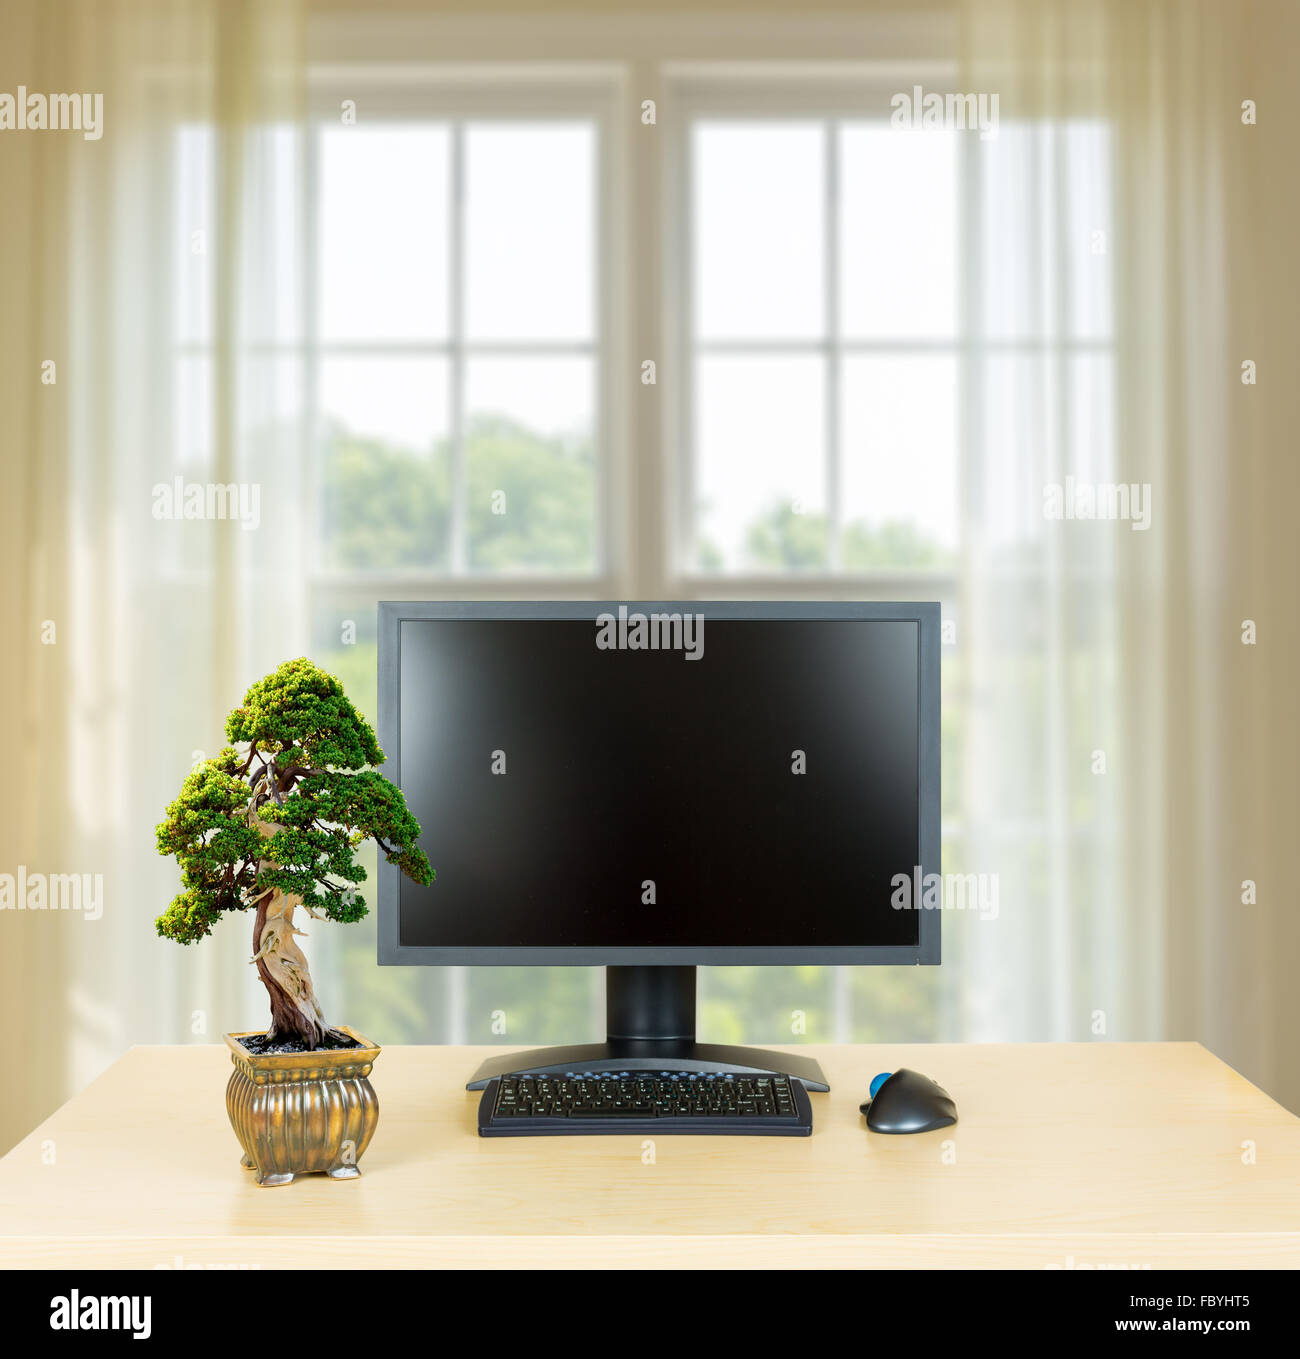 bonsai tree for office. Small Bonsai Tree On Plain Office Desk With Monitor For